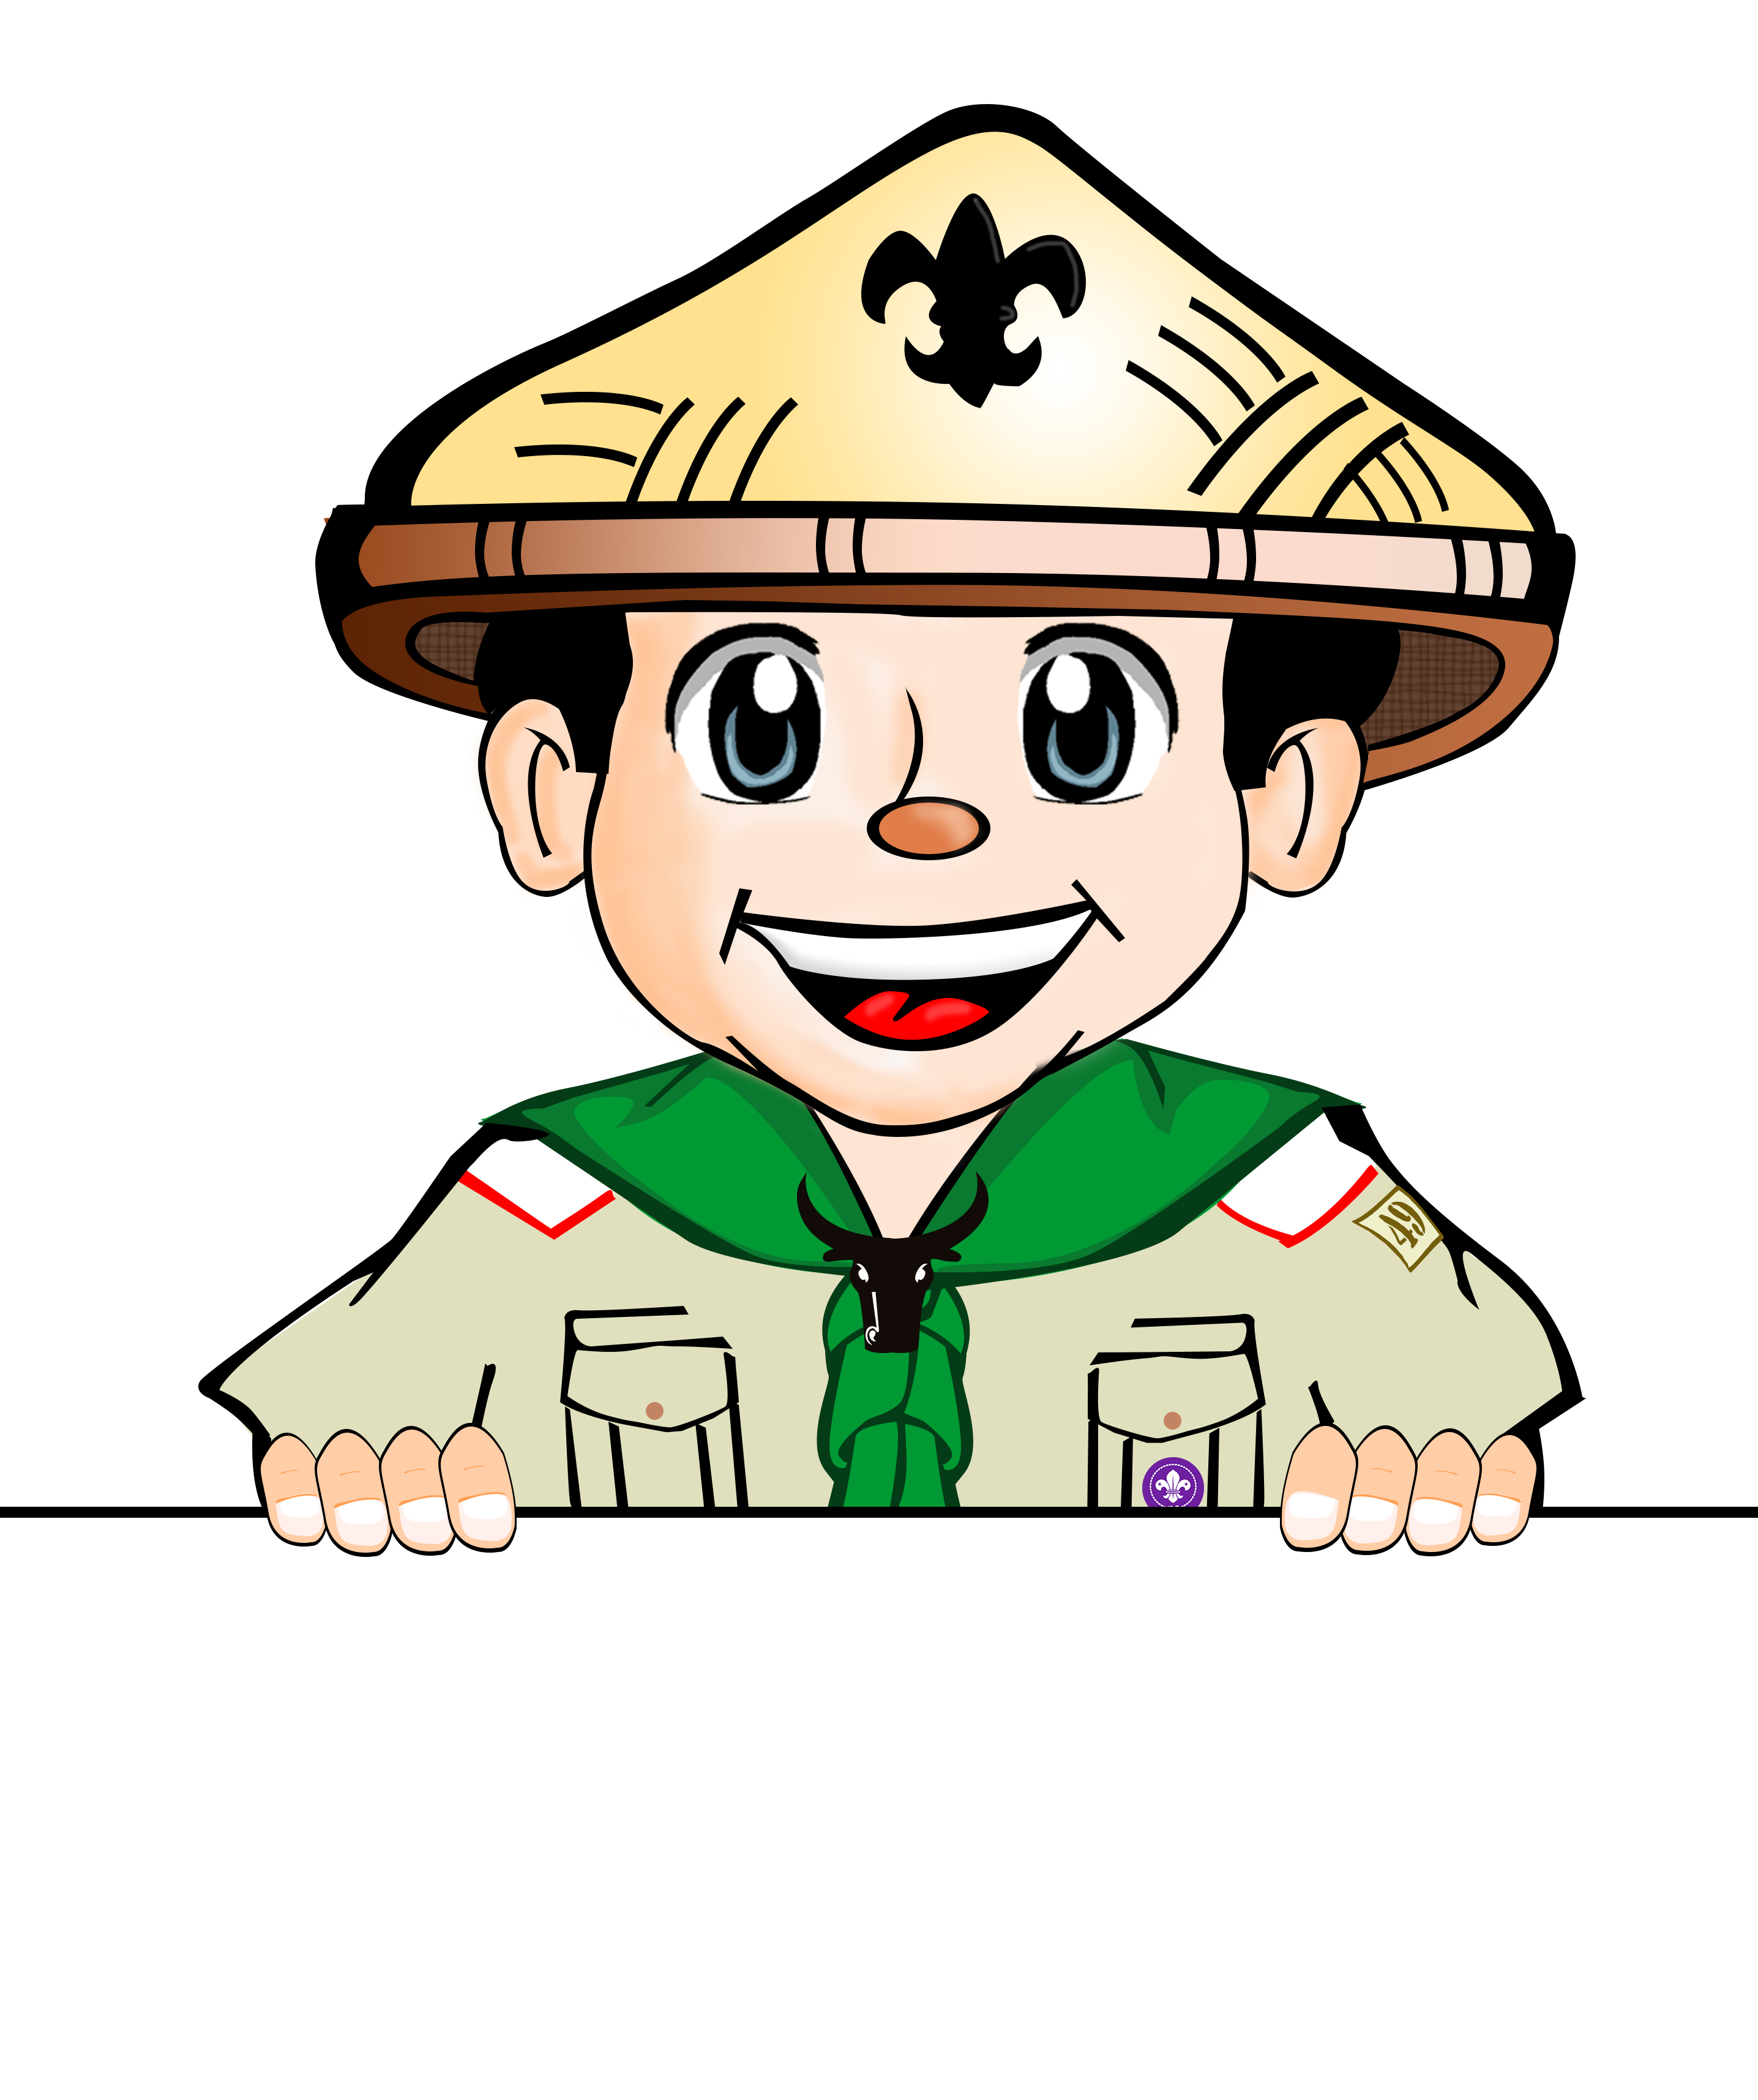 Happiness clipart citizen. Elementary boy scout of